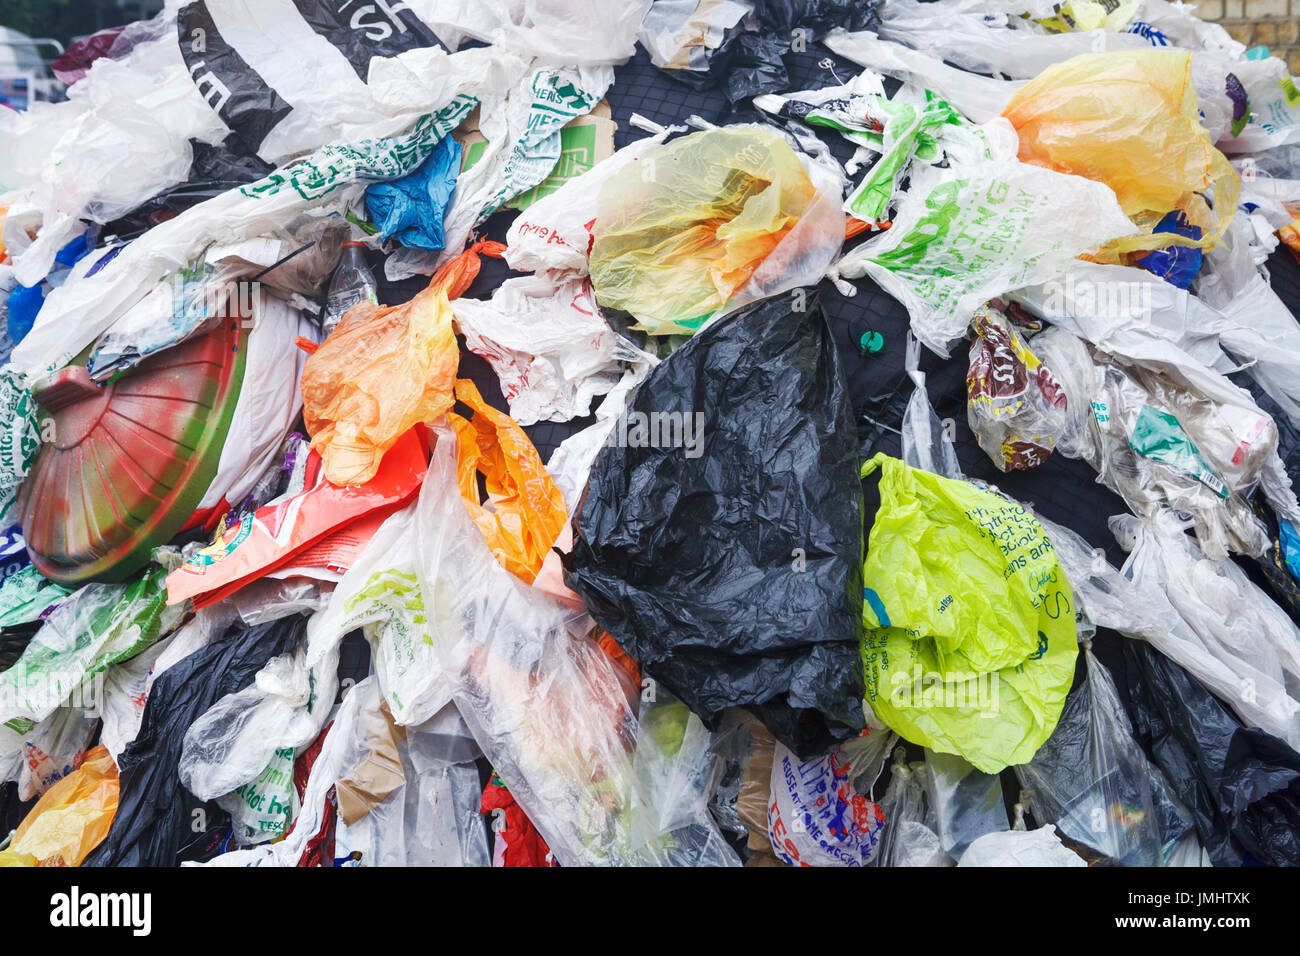 Plastic bags UK. Plastic bags environment UK. Plastic shopping bags. Plastic pollution UK. - Stock Image